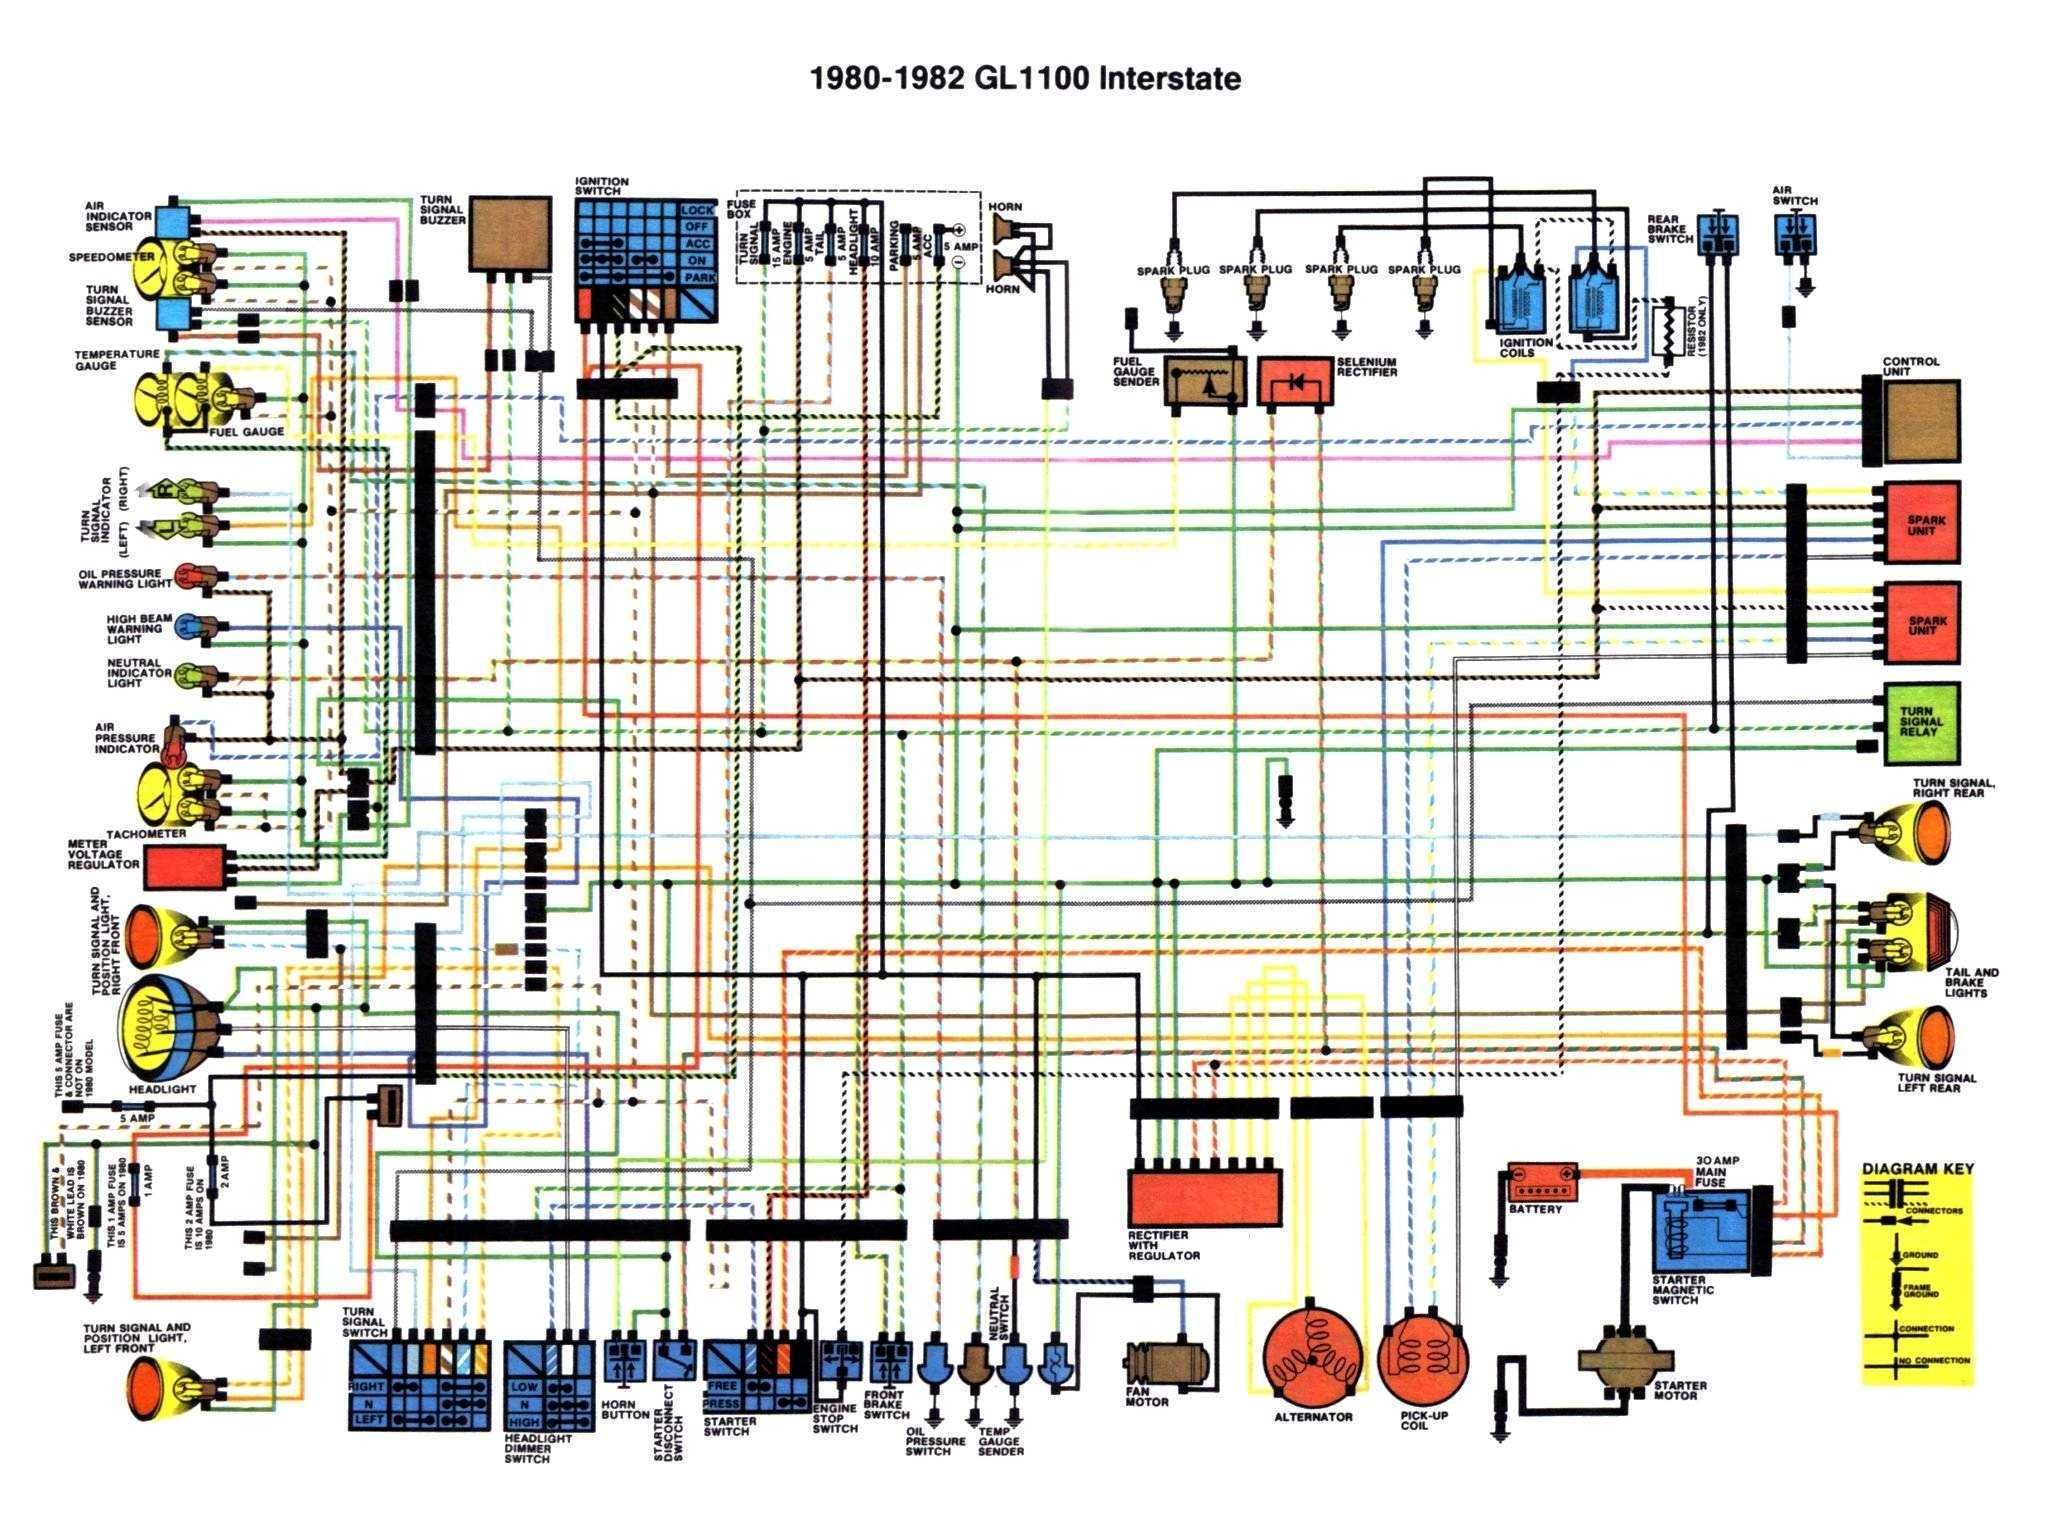 Honda Goldwing GL1100 Interstate 1980 to 1982 Color Schematic?resize=665%2C499 virago 750 wiring diagram virago automotive wiring diagram printable 1983 yamaha virago 920 wiring diagram at crackthecode.co